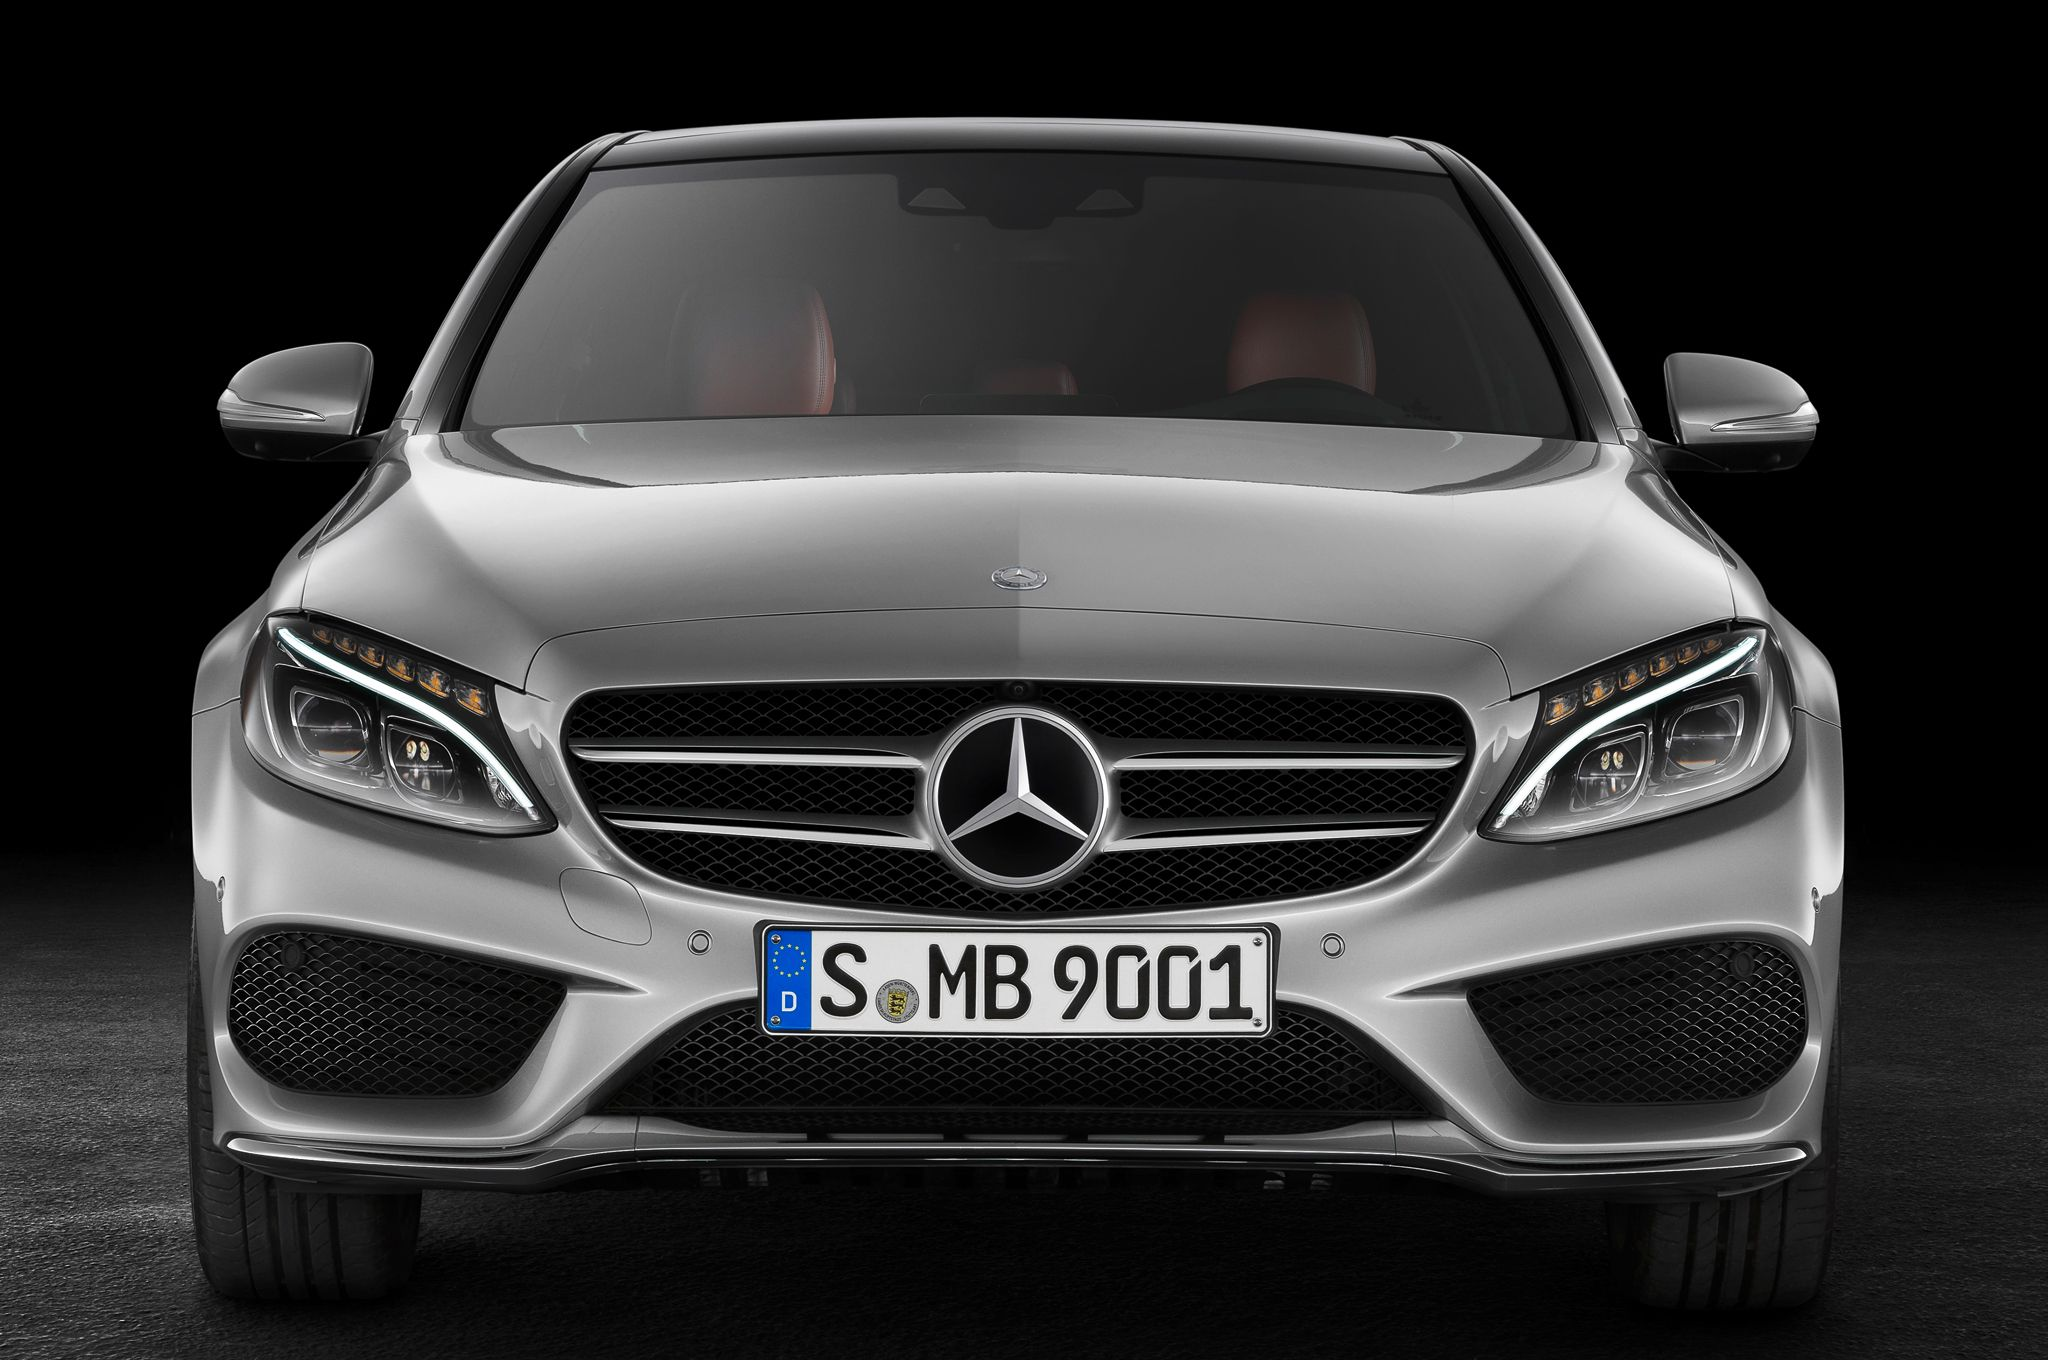 2015 Mercedes Benz C Class Front View Free Wallpaper Download Benz C Mercedes Benz Mercedes New Car